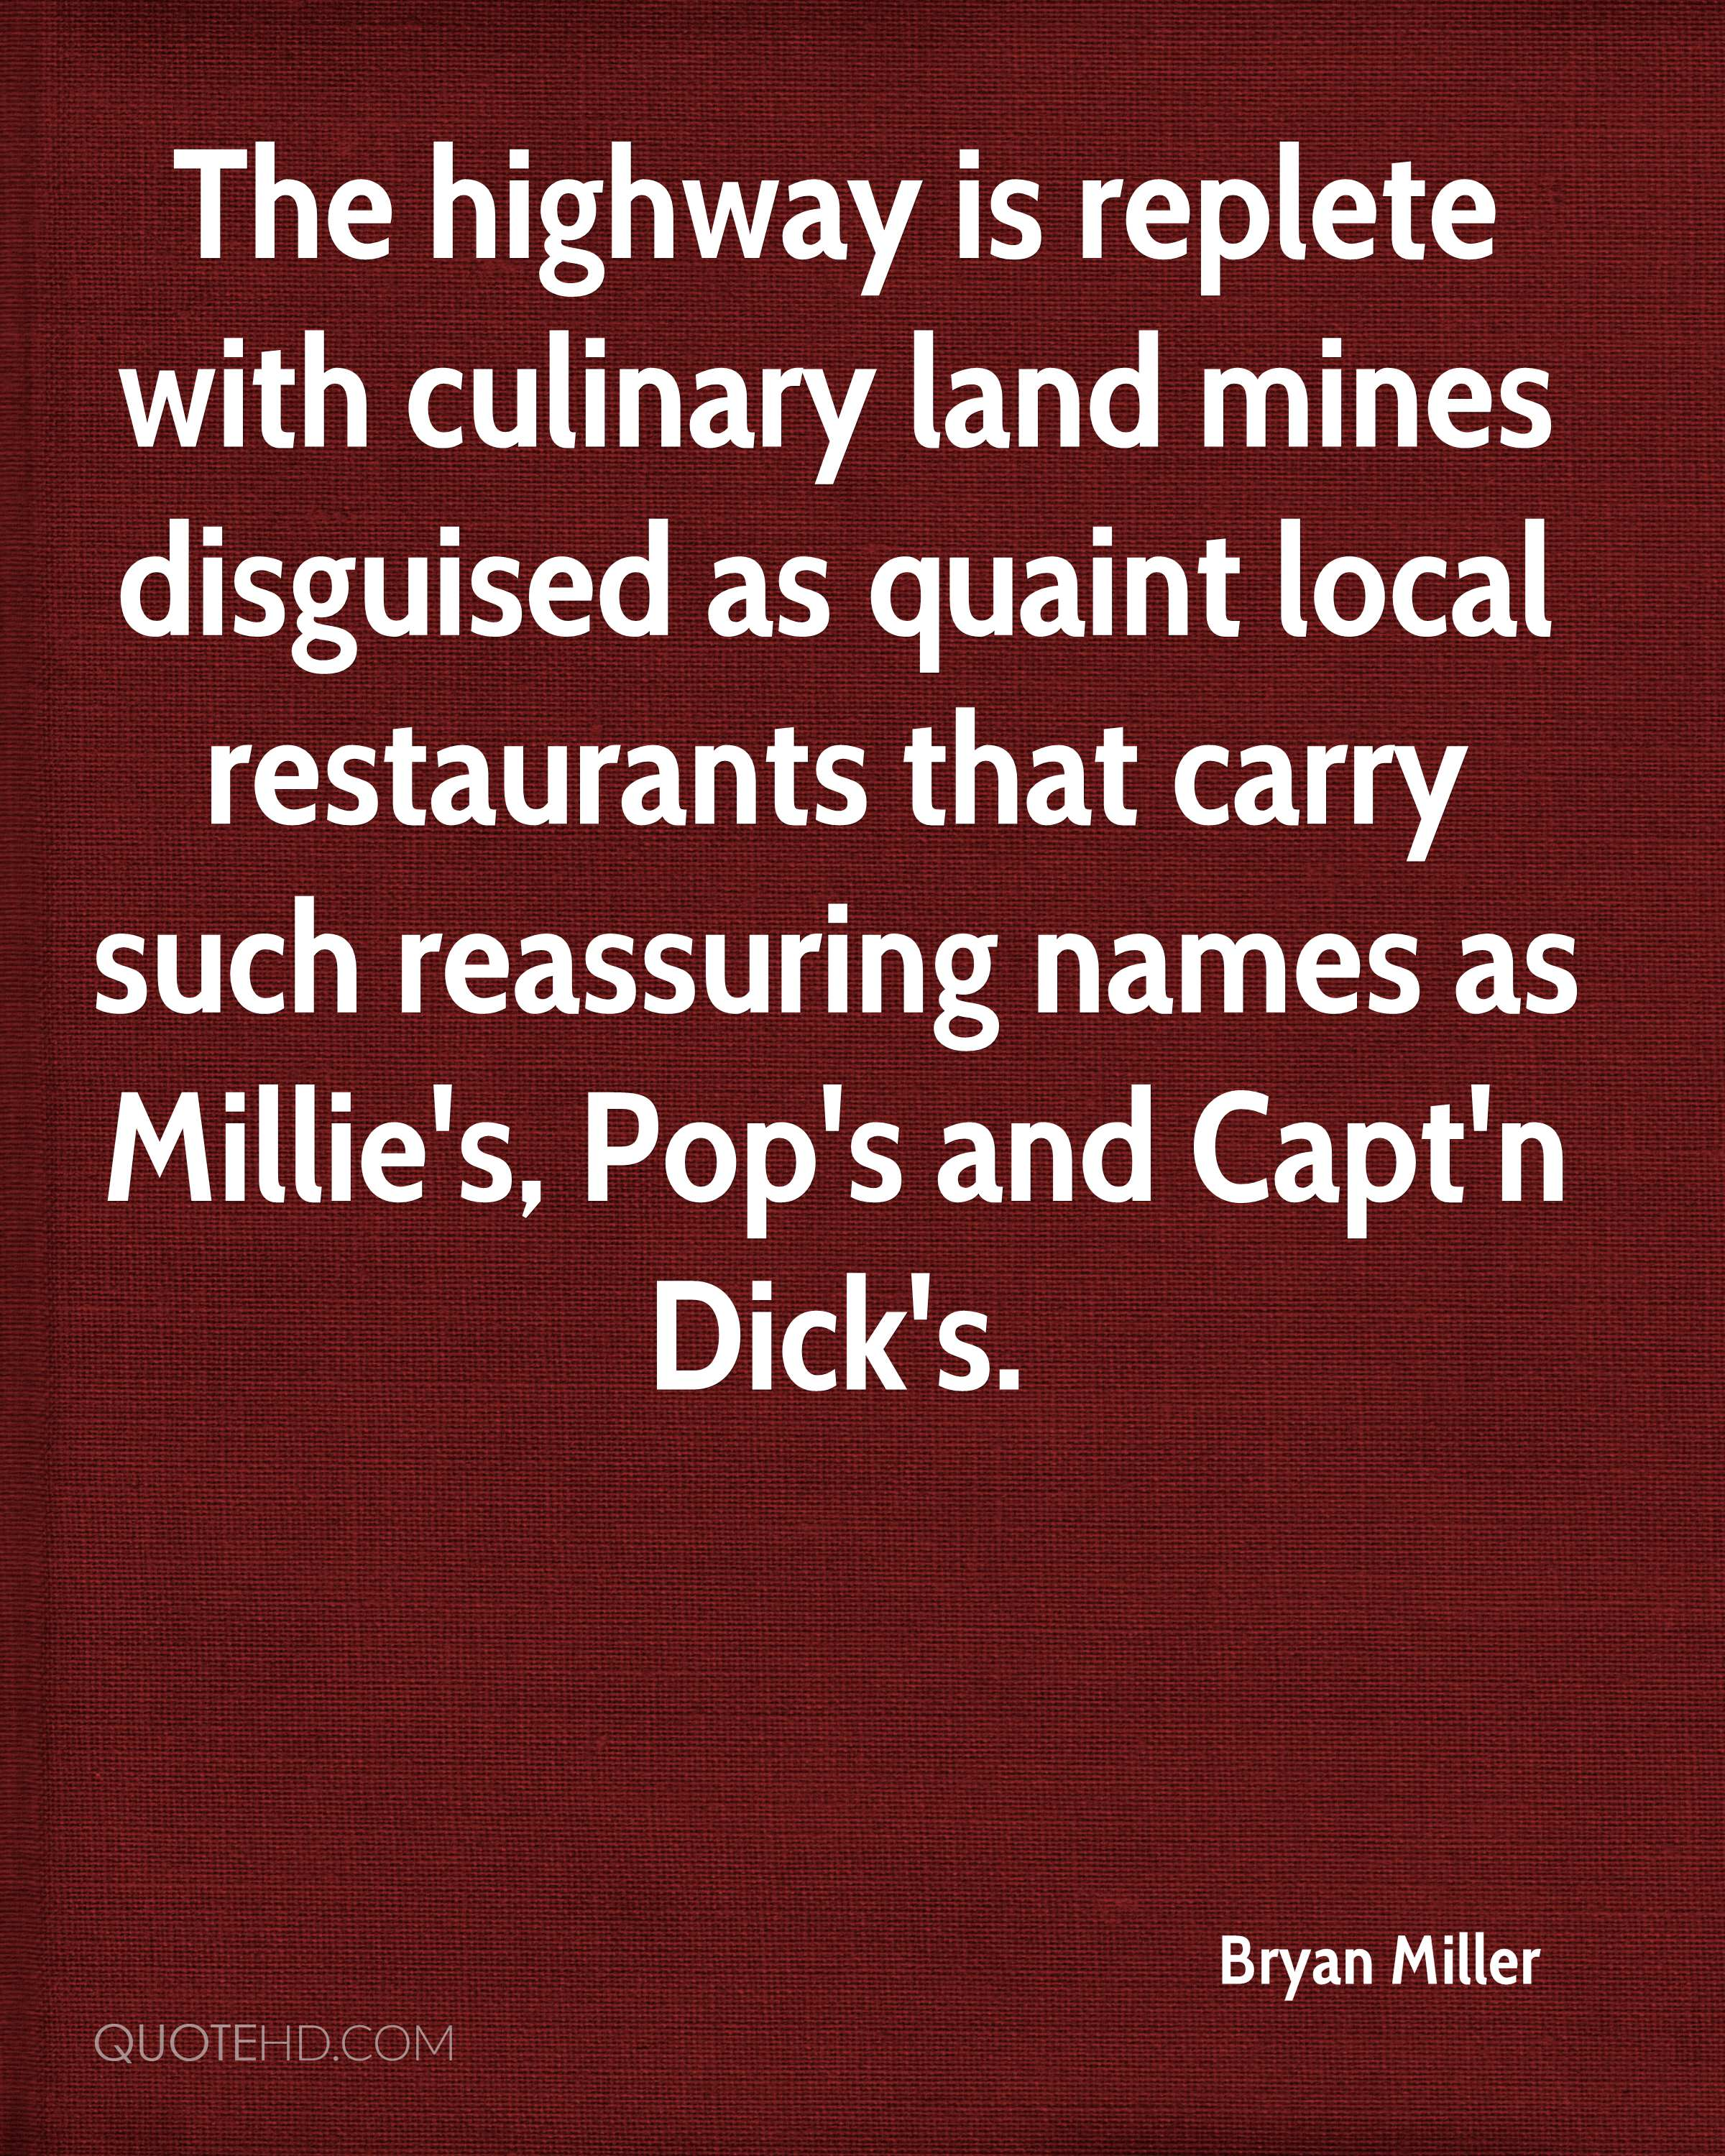 The highway is replete with culinary land mines disguised as quaint local restaurants that carry such reassuring names as Millie's, Pop's and Capt'n Dick's.